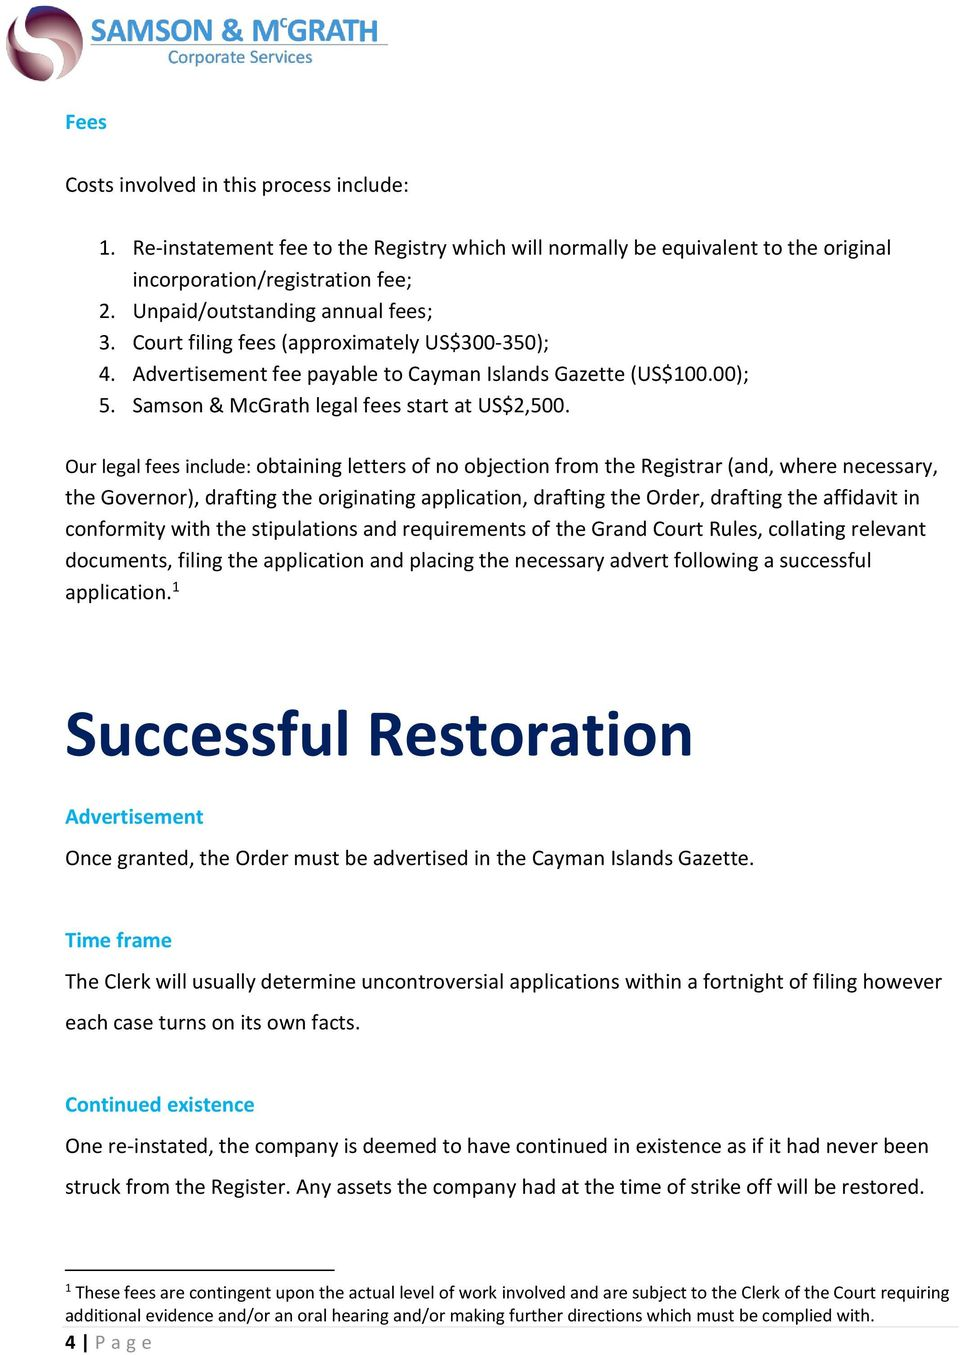 GUIDE Cayman Islands RESTORATION OF CAYMAN COMPANY POSTSTRIKE OFF – No Objection Letter from Company